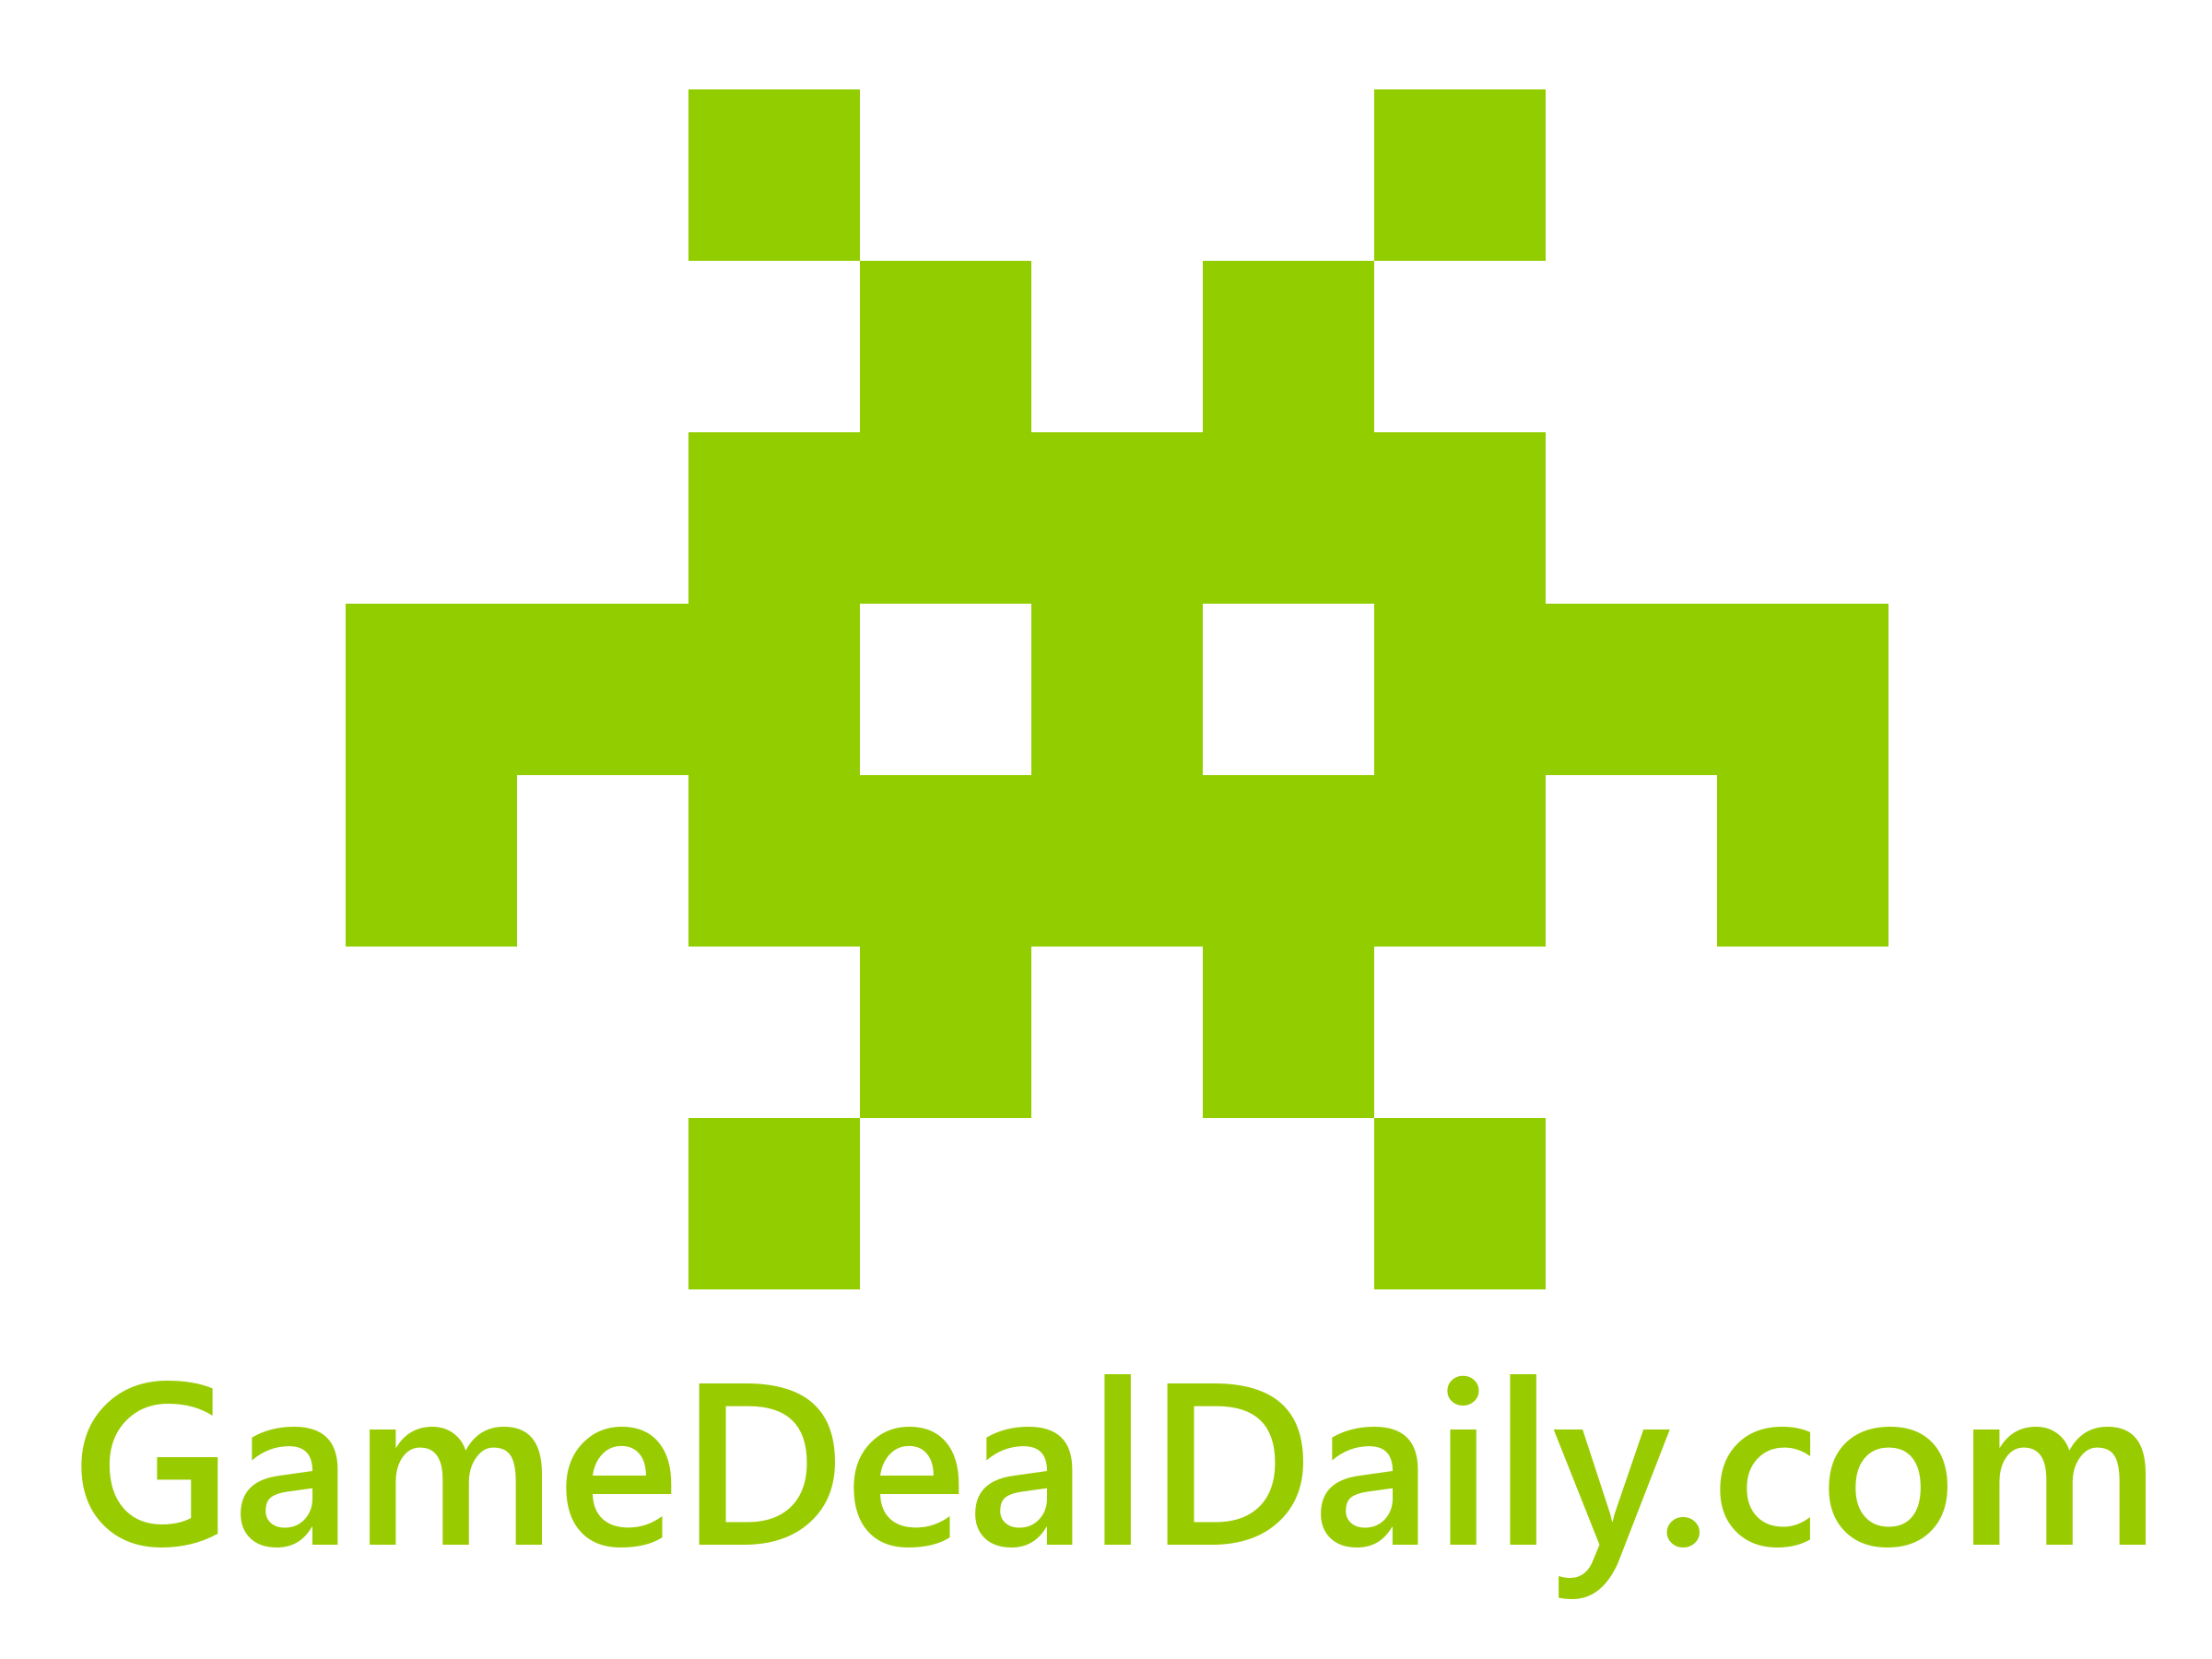 Game Deal Daily Coupon Codes Promo Codes